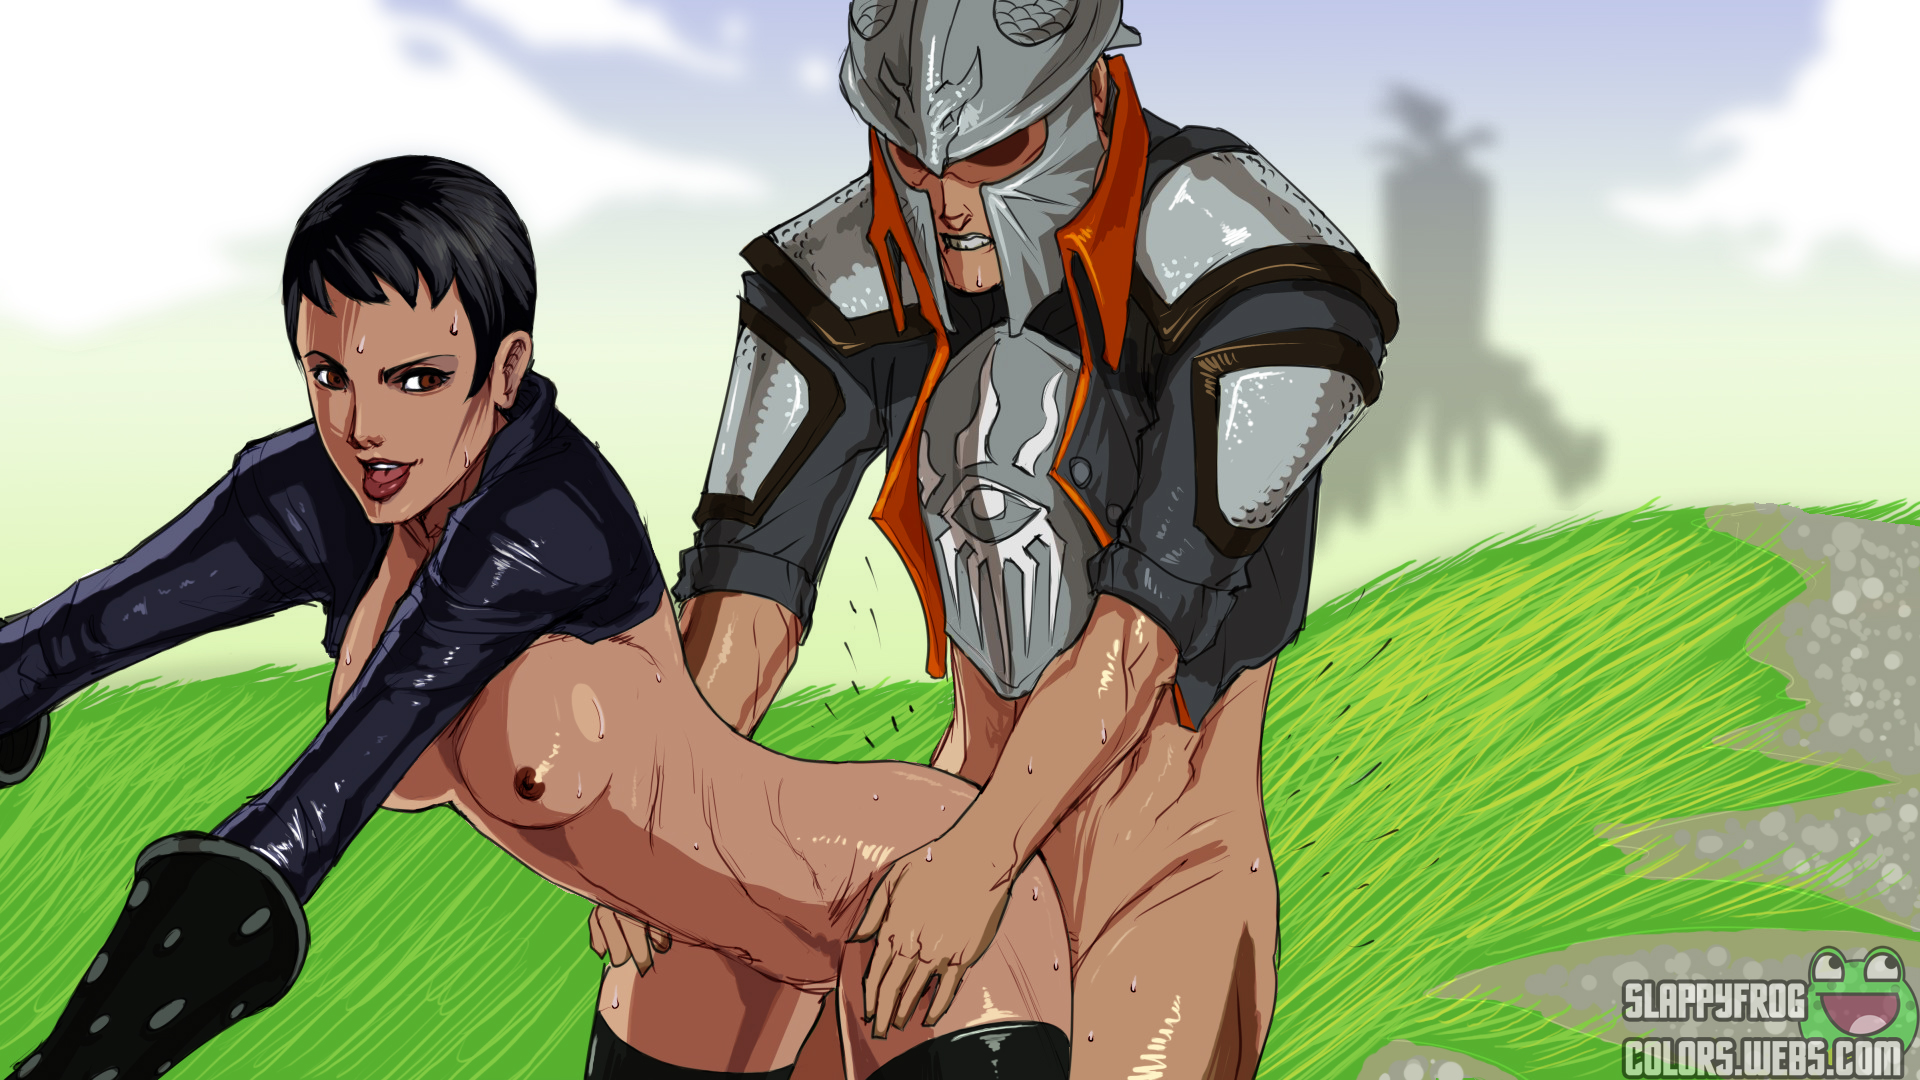 Dragon age inquisition game sex image hentay  adult film